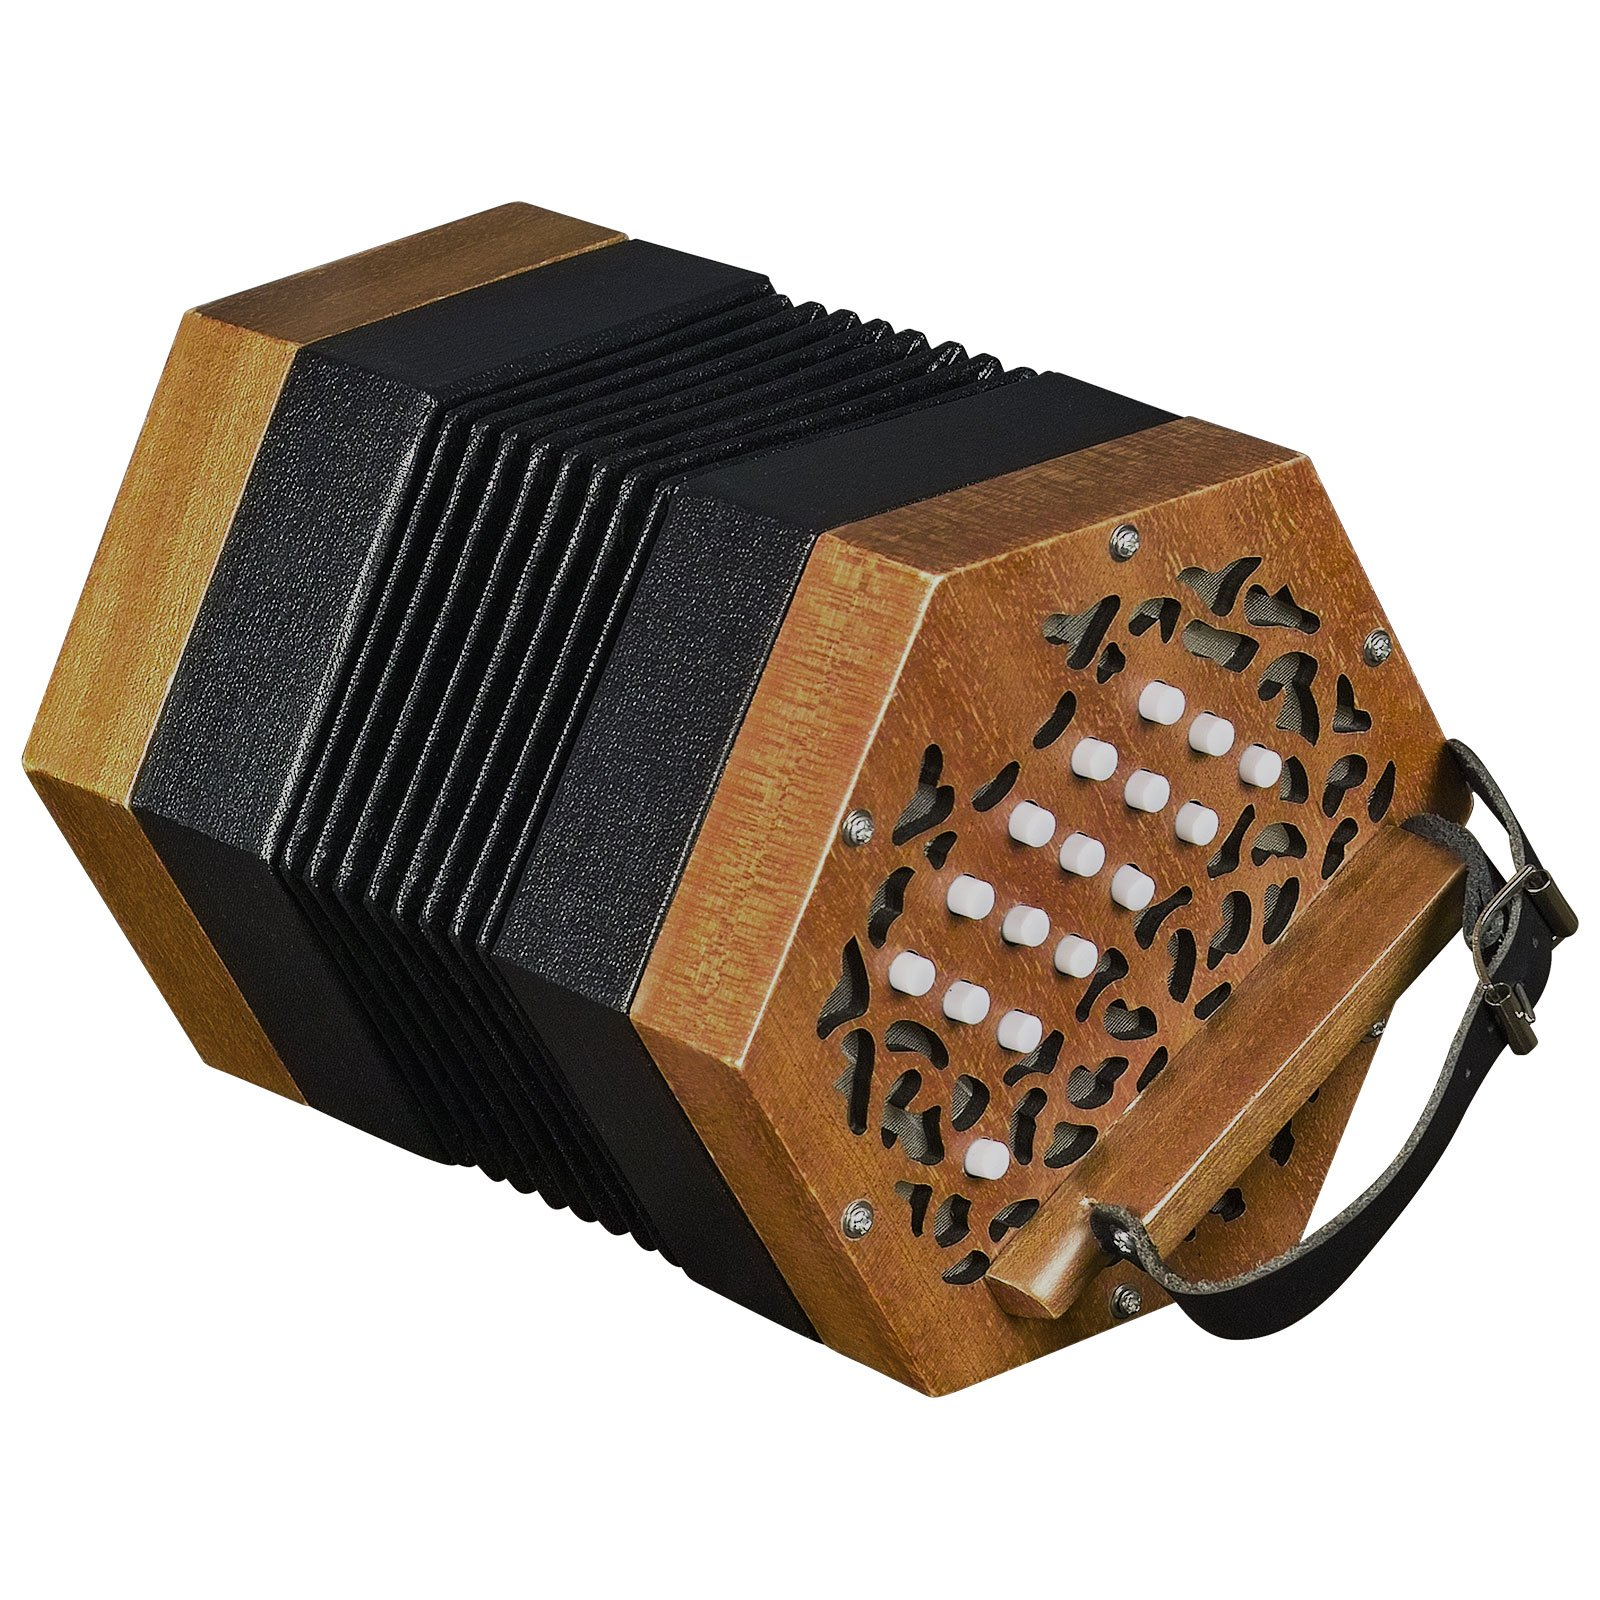 Trinity College AP-1230 Anglo-Style Concertina